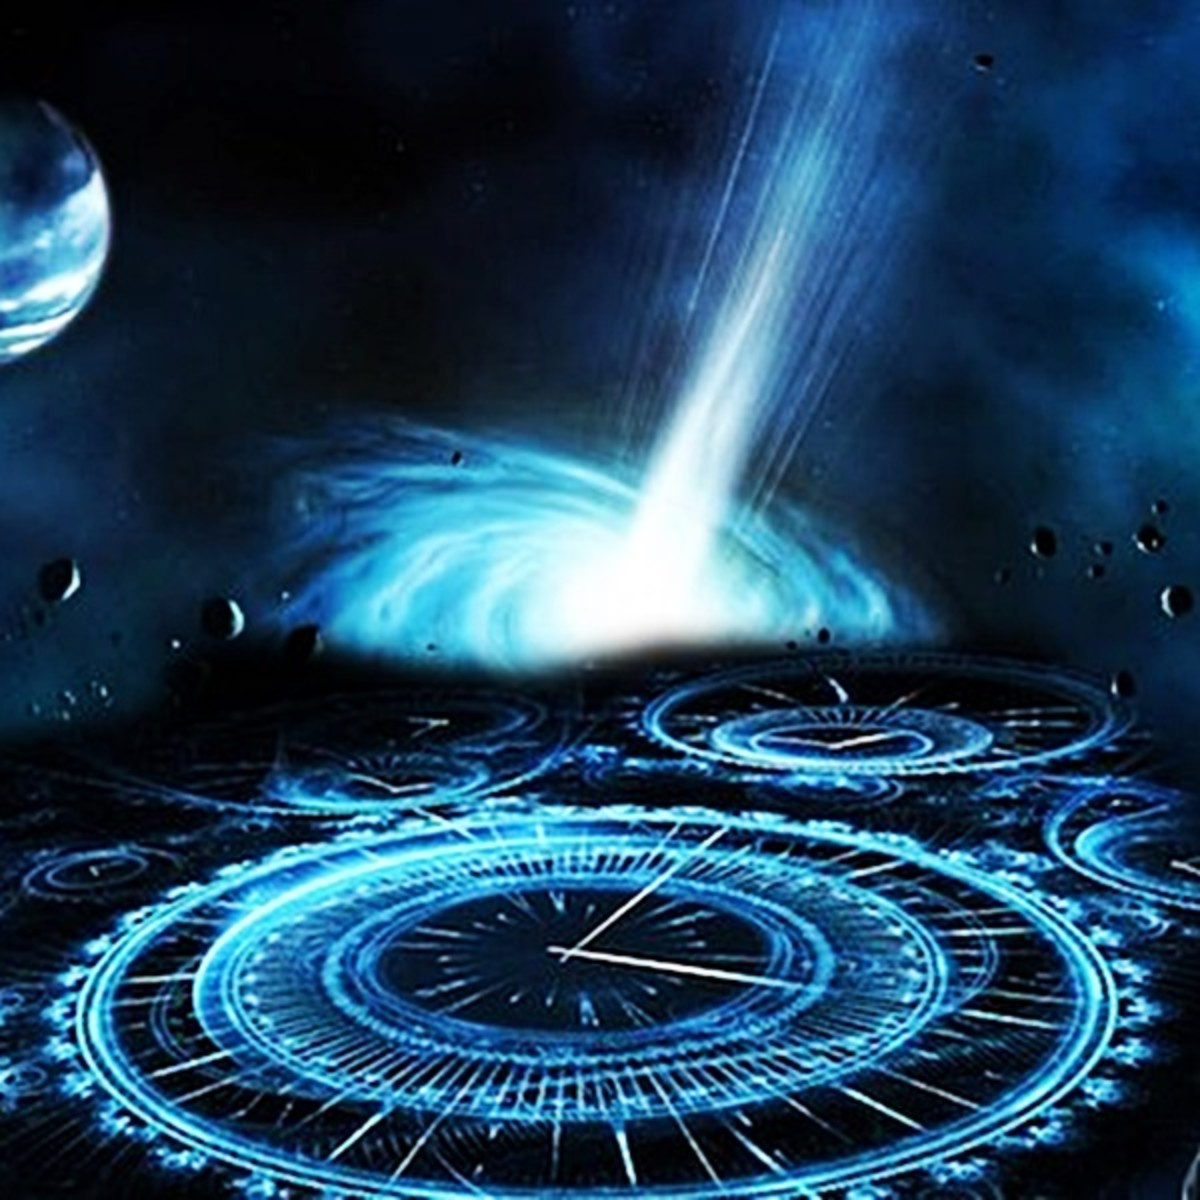 Wormholes through the 4th dimension could be used for more than just 'time travel' by linking planets and destinations in fixed portals.